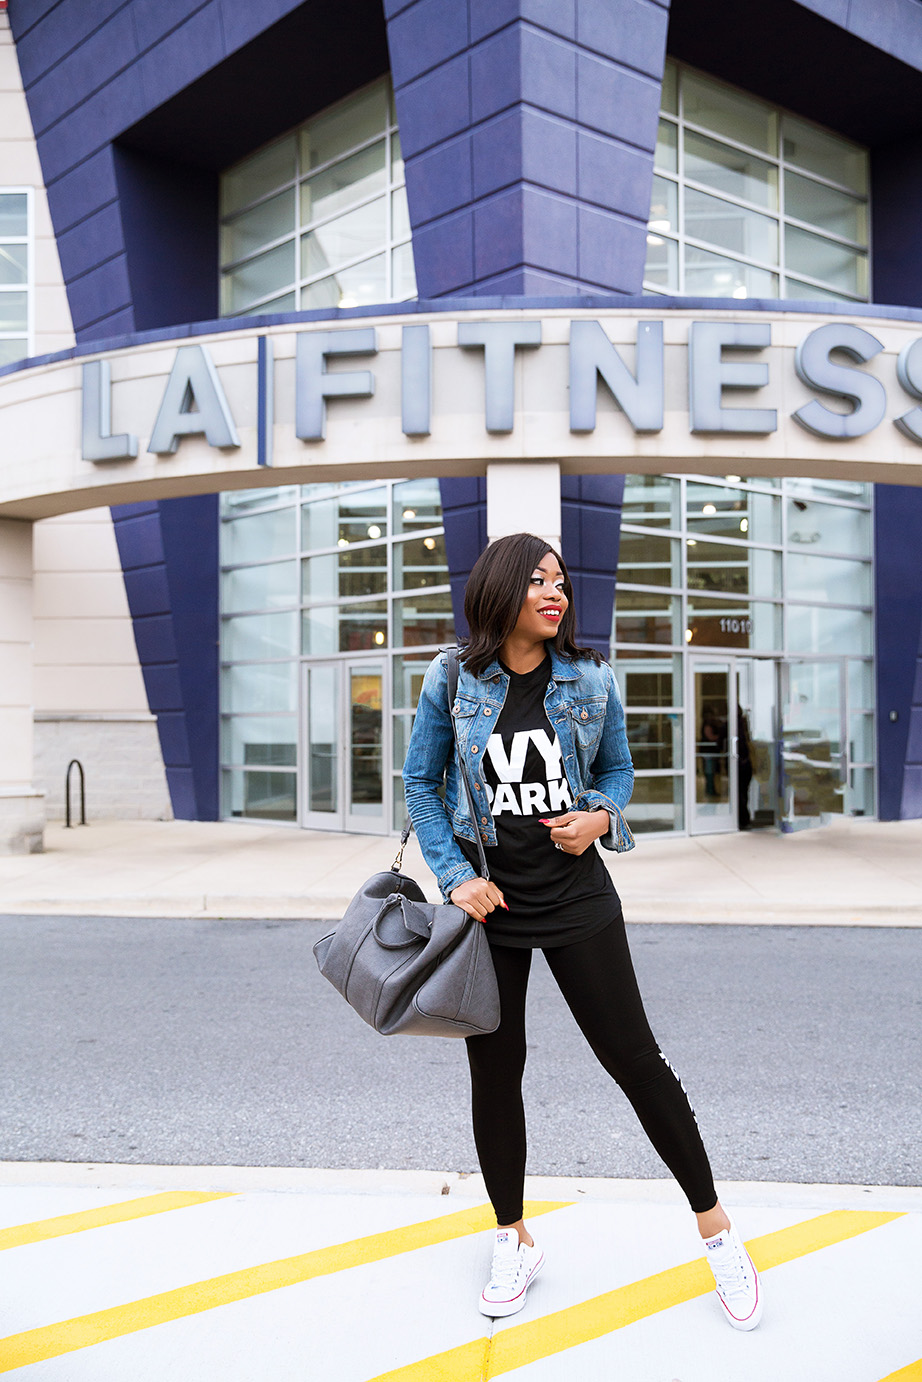 LA Fitness Westfield mall, www.jadore-fashion.com